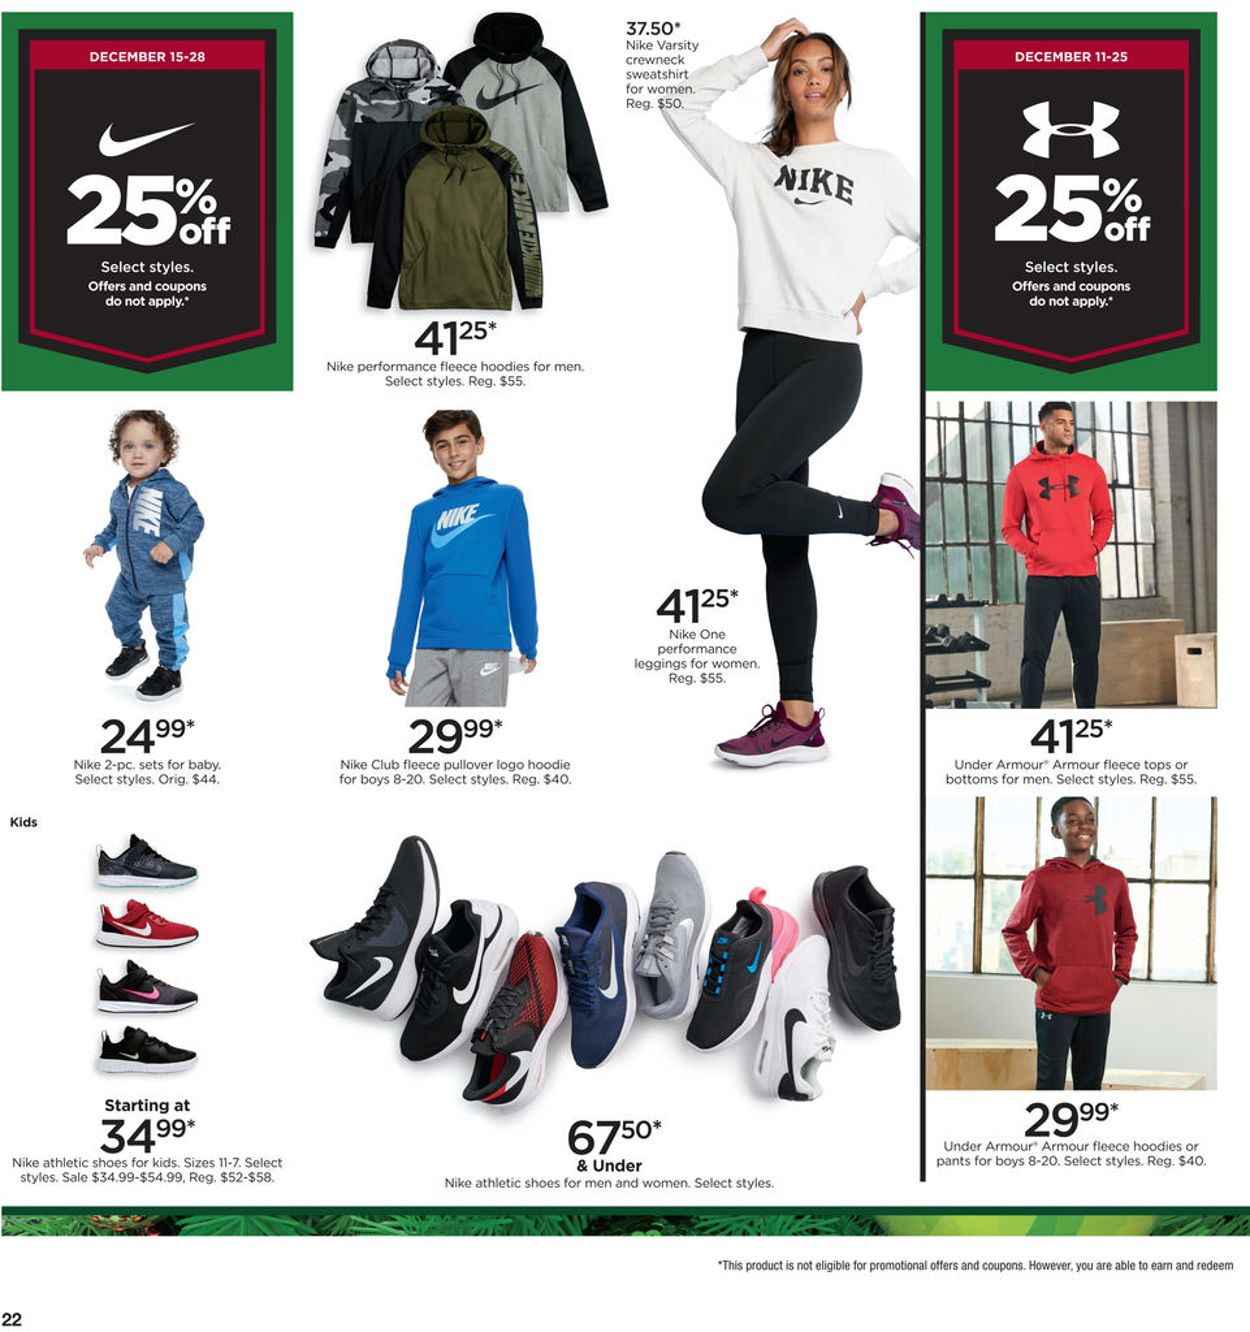 Kohl S Christmas Ad 2019 Current Weekly Ad 12 20 12 24 2019 22 Frequent Ads Com